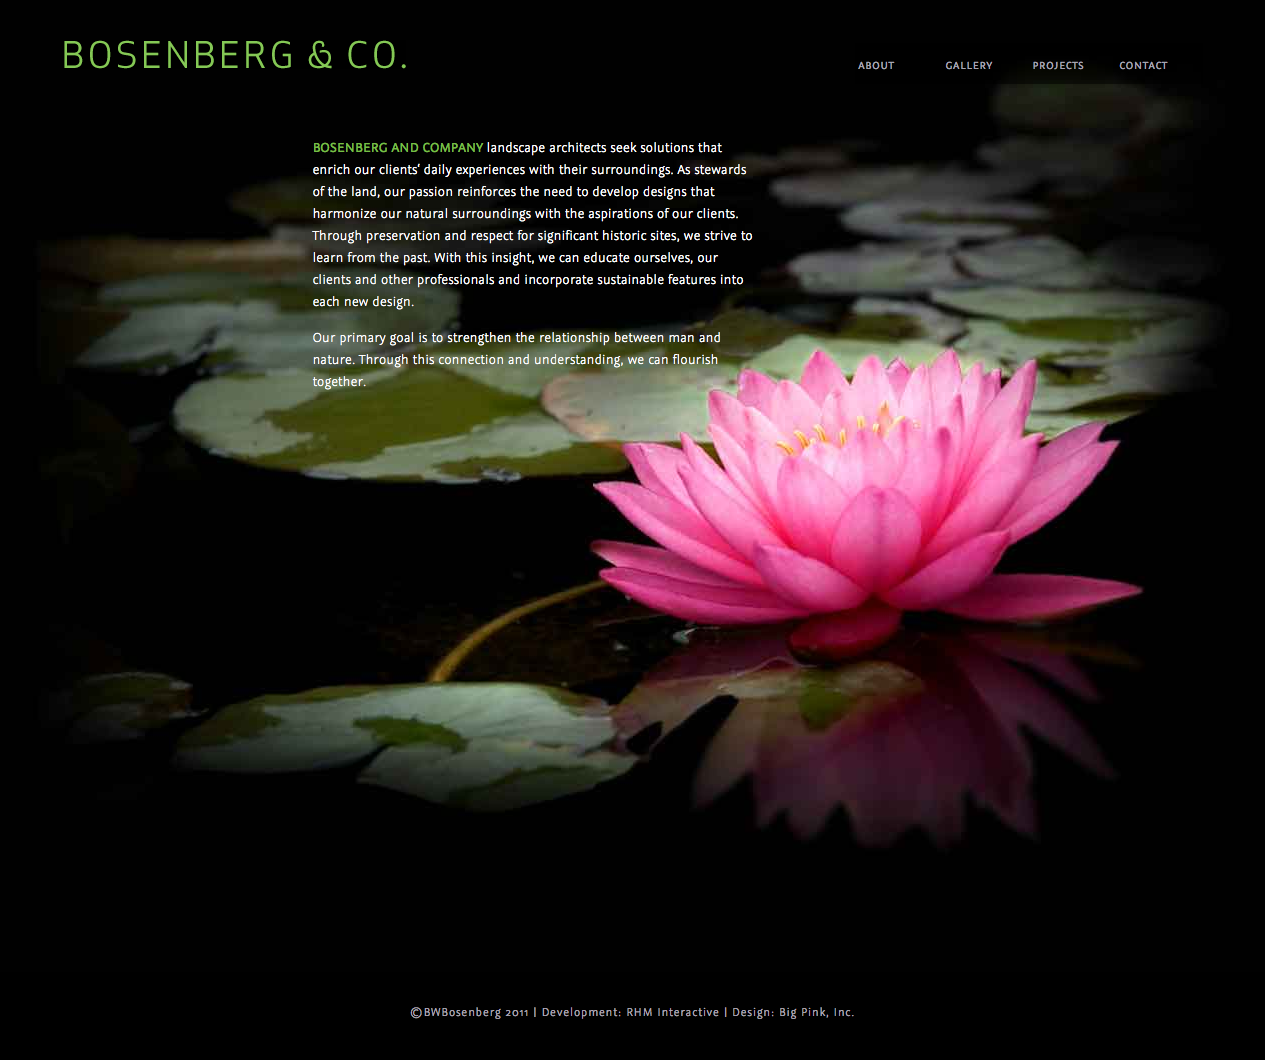 Bosenberg & Co. Homepage